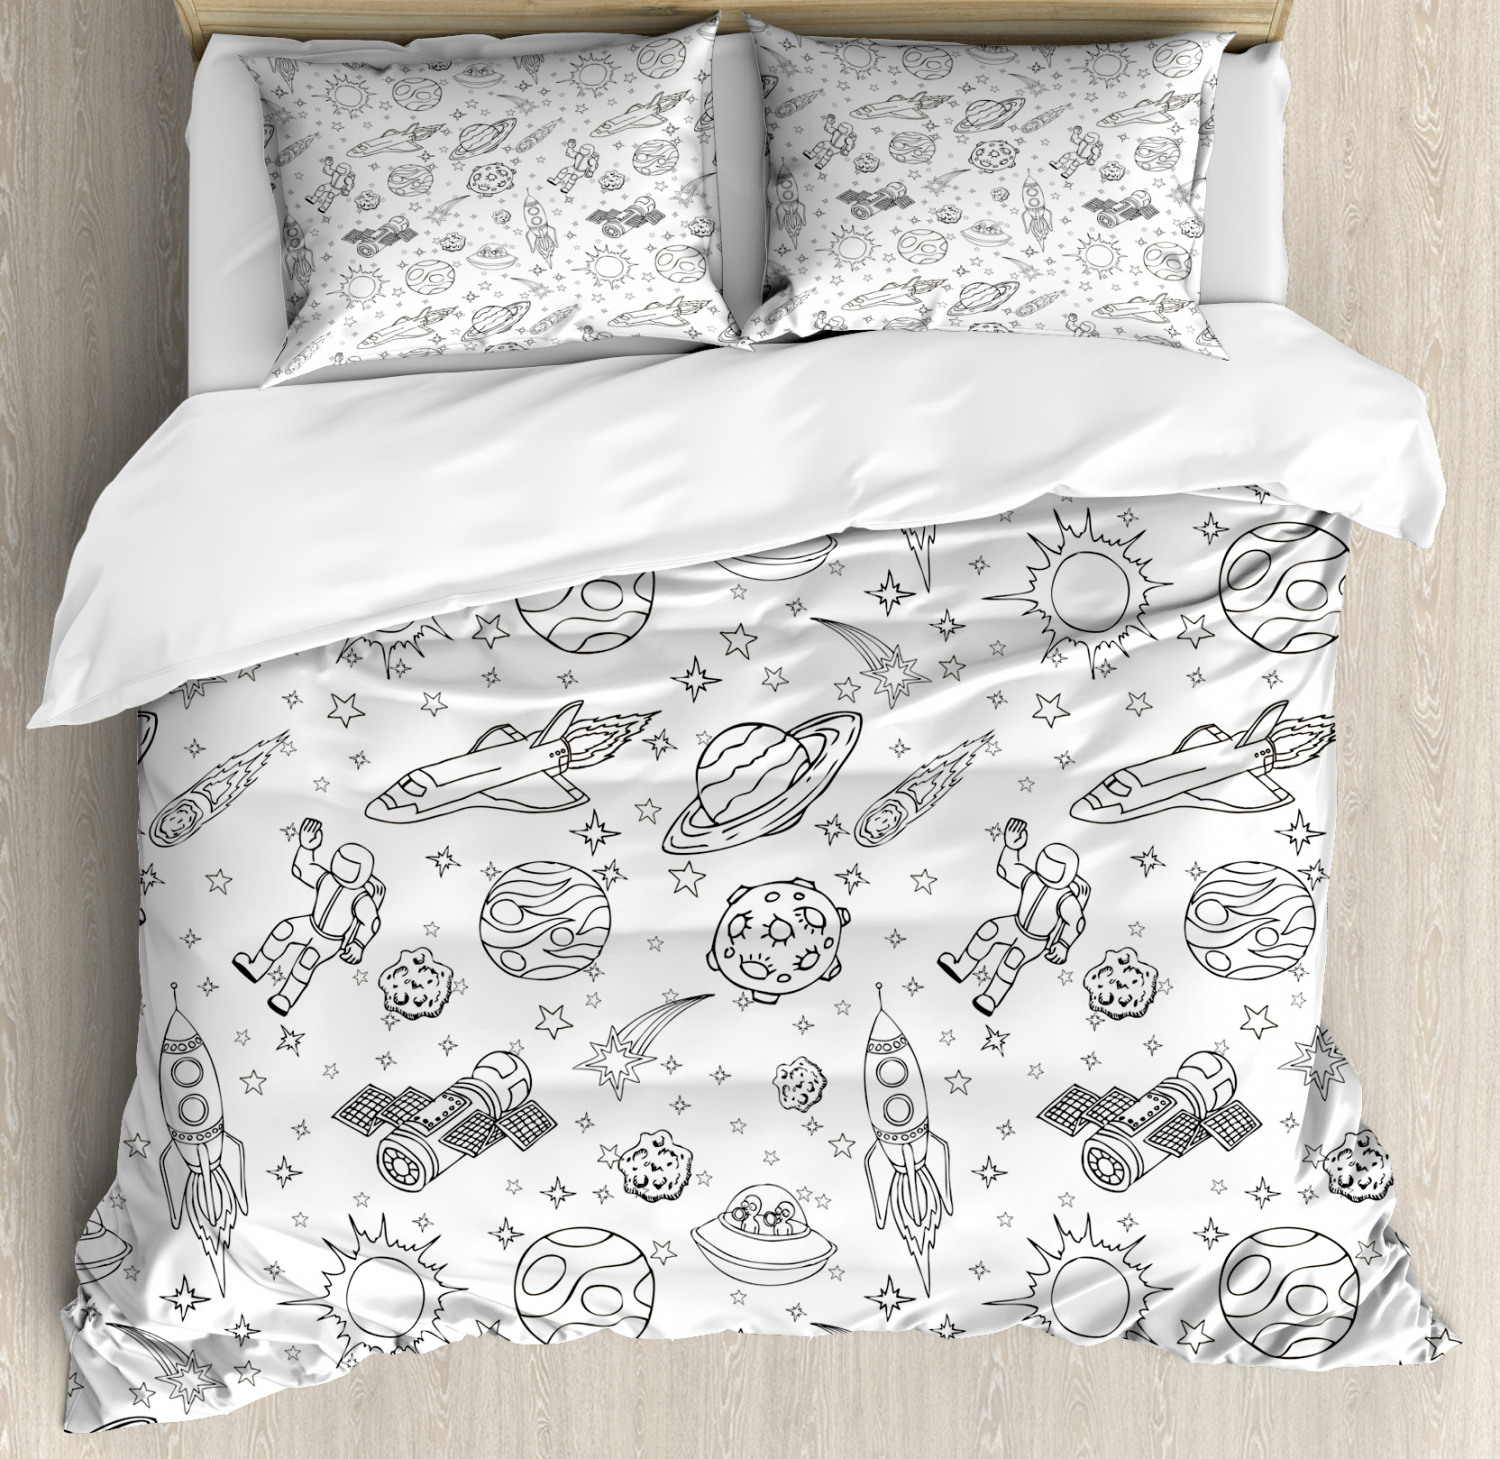 boy s duvet cover set doodle solar system astronauts space crafts and shooting stars science fiction theme decorative bedding set with pillow shams